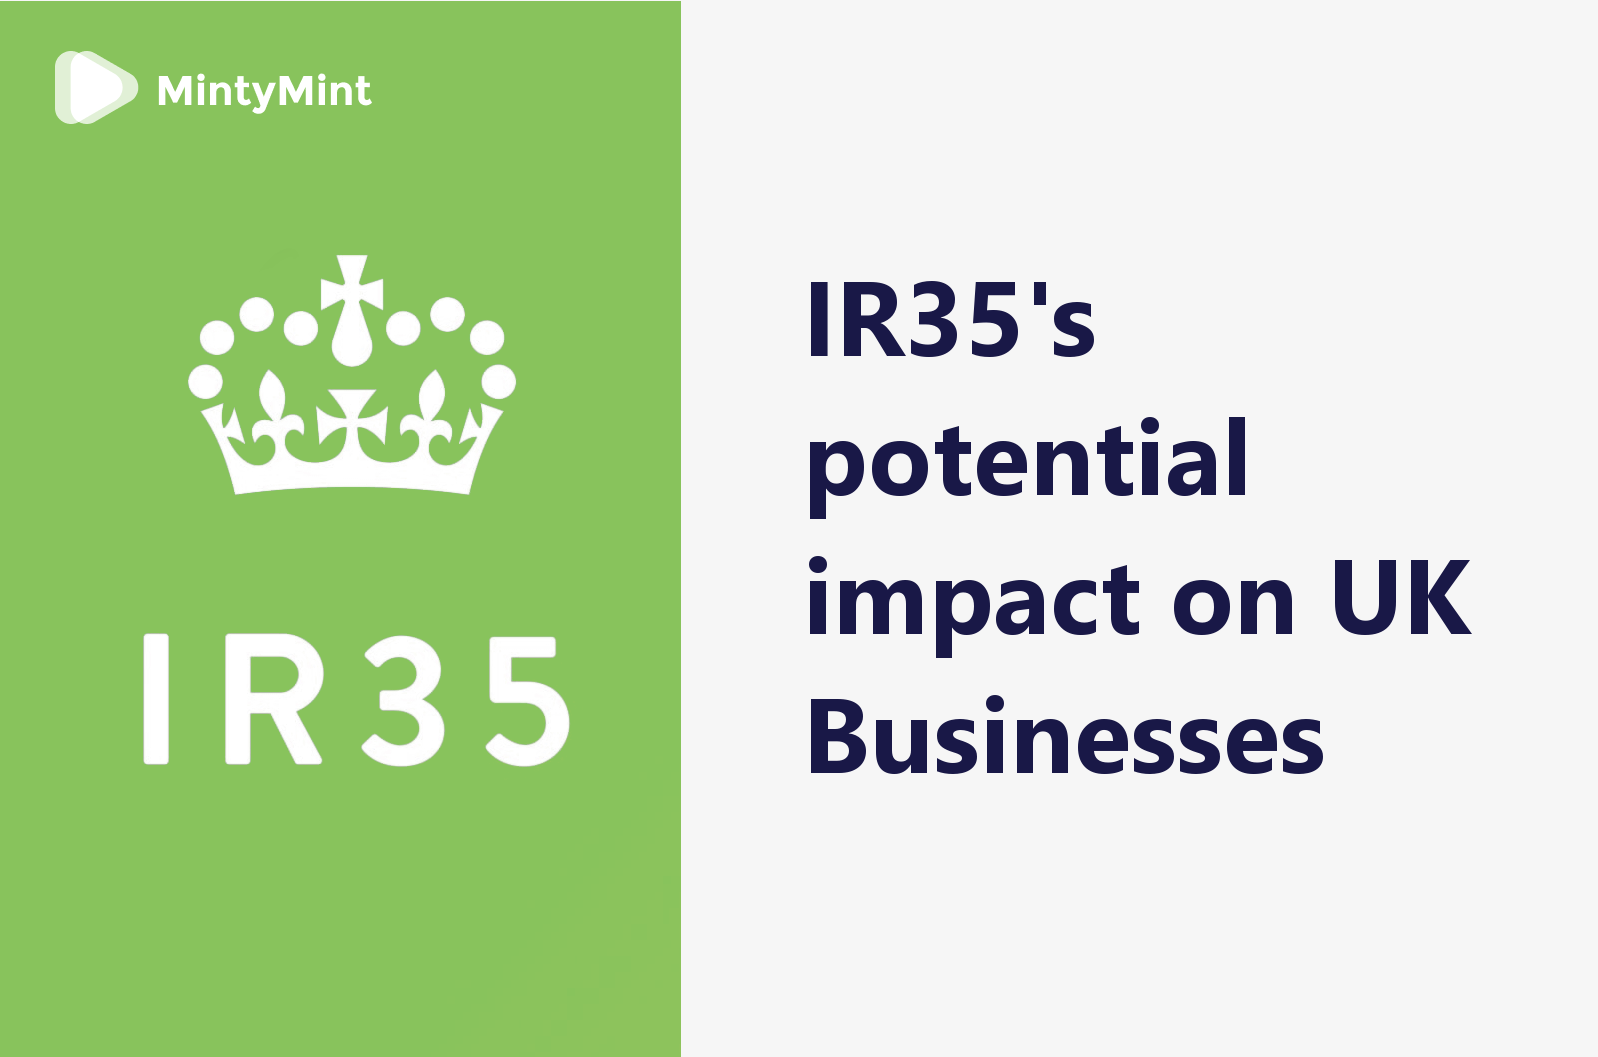 IR35 potential impact on UK Businesses